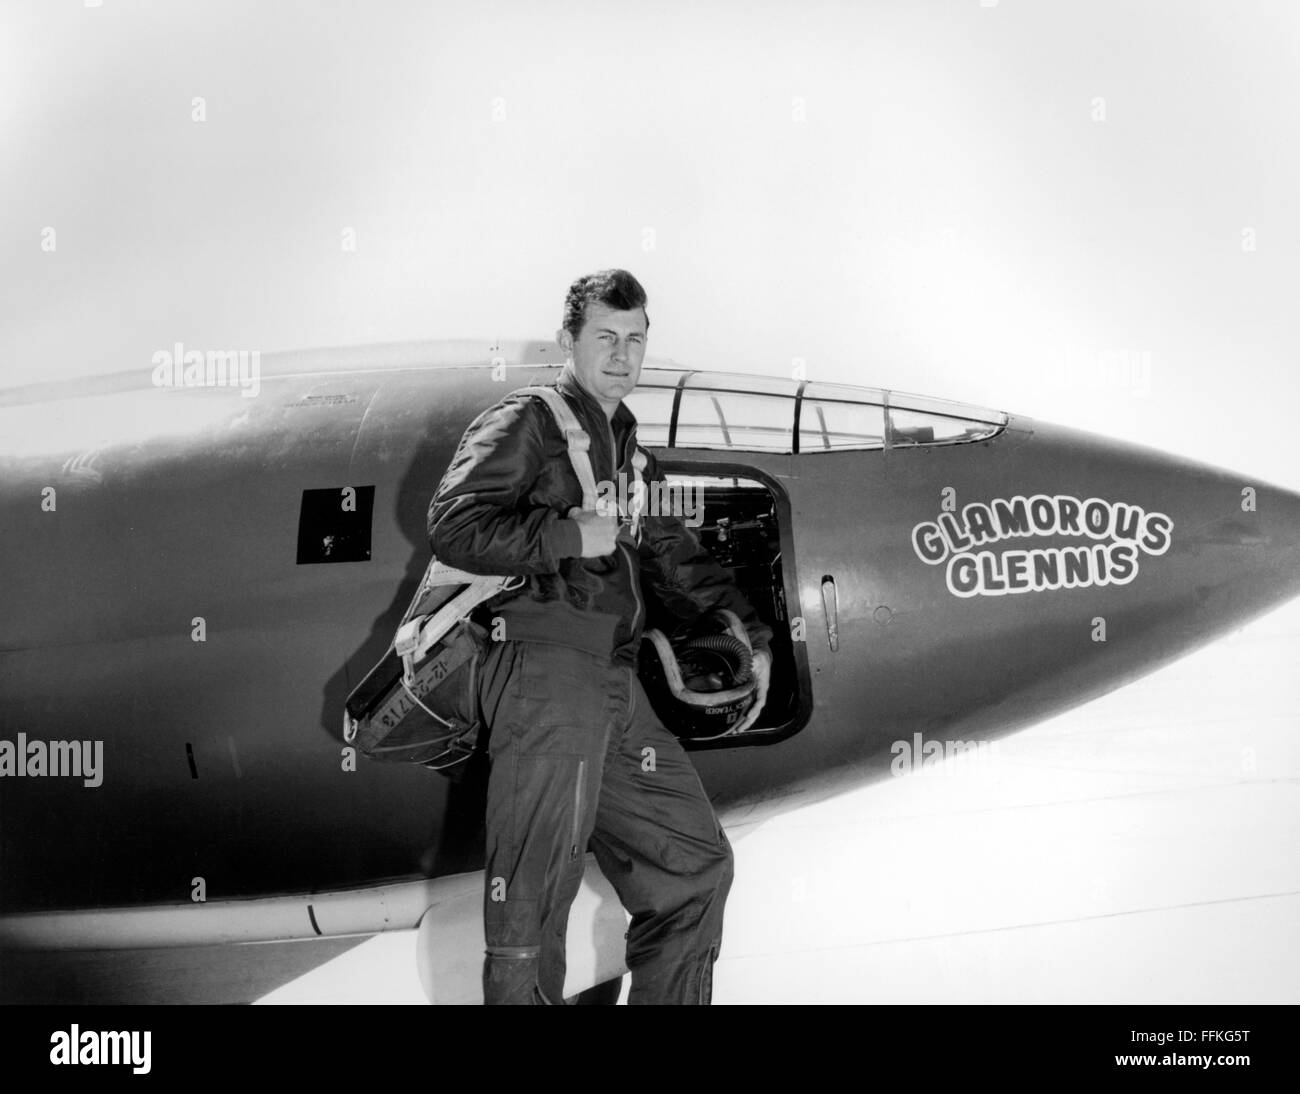 Chuck Yeager. US Air Force test pilot Chuck Yeager standing in front of the Bell X-1 'Glamorous Glennis' - Stock Image